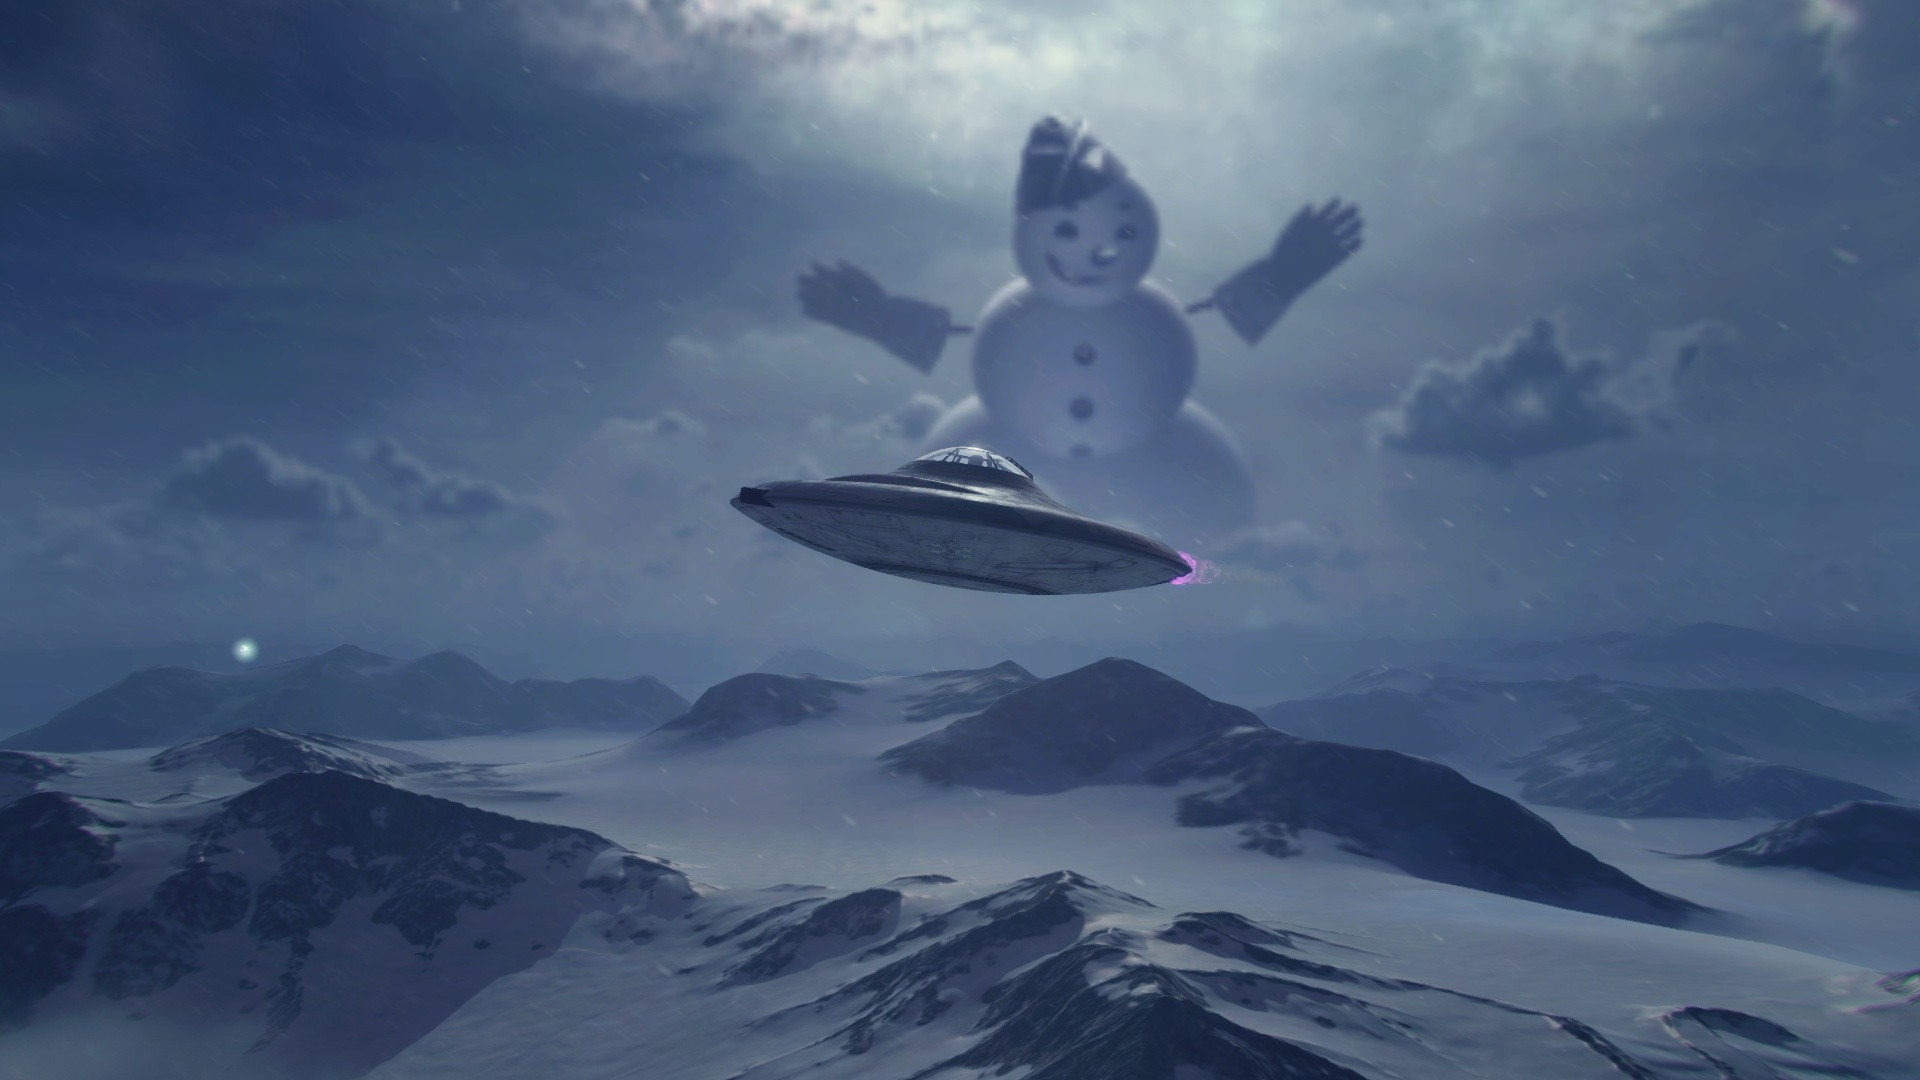 Happy New Year 2016 3d Wallpaper For Pc World Of Warplanes Is Being Invaded By Ufos This Holiday